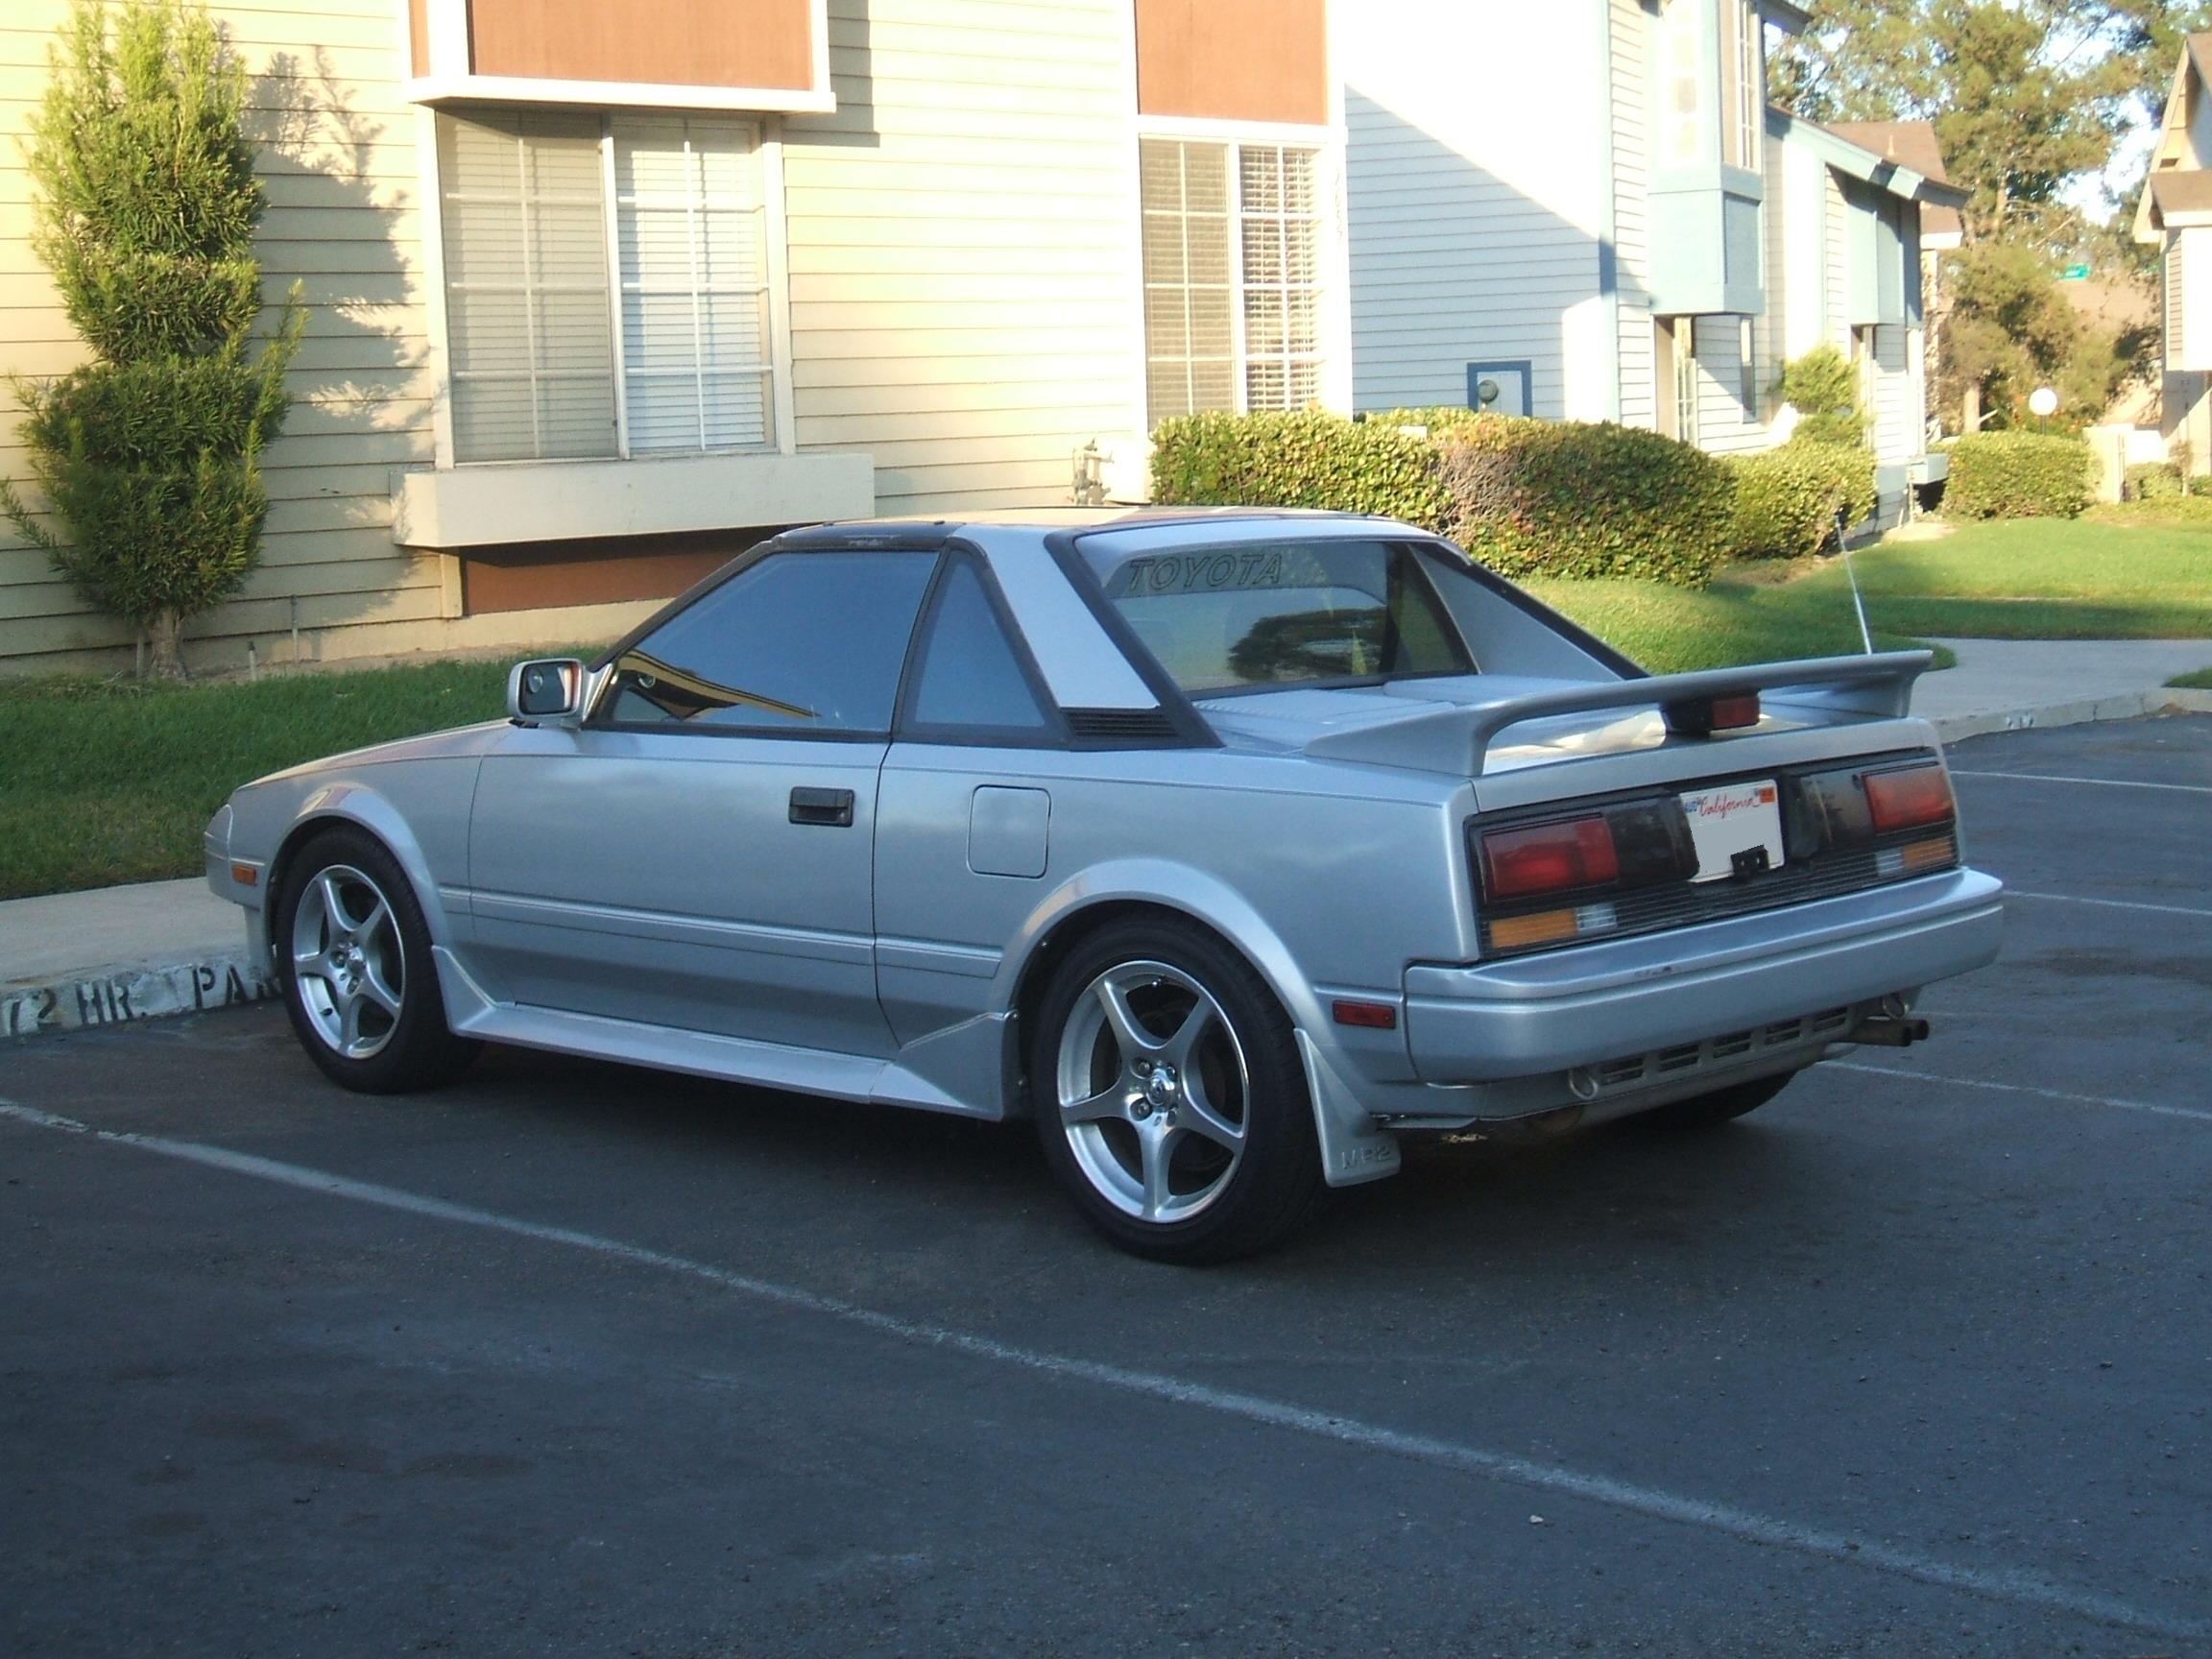 jaynh 1988 Toyota MR2 13051254